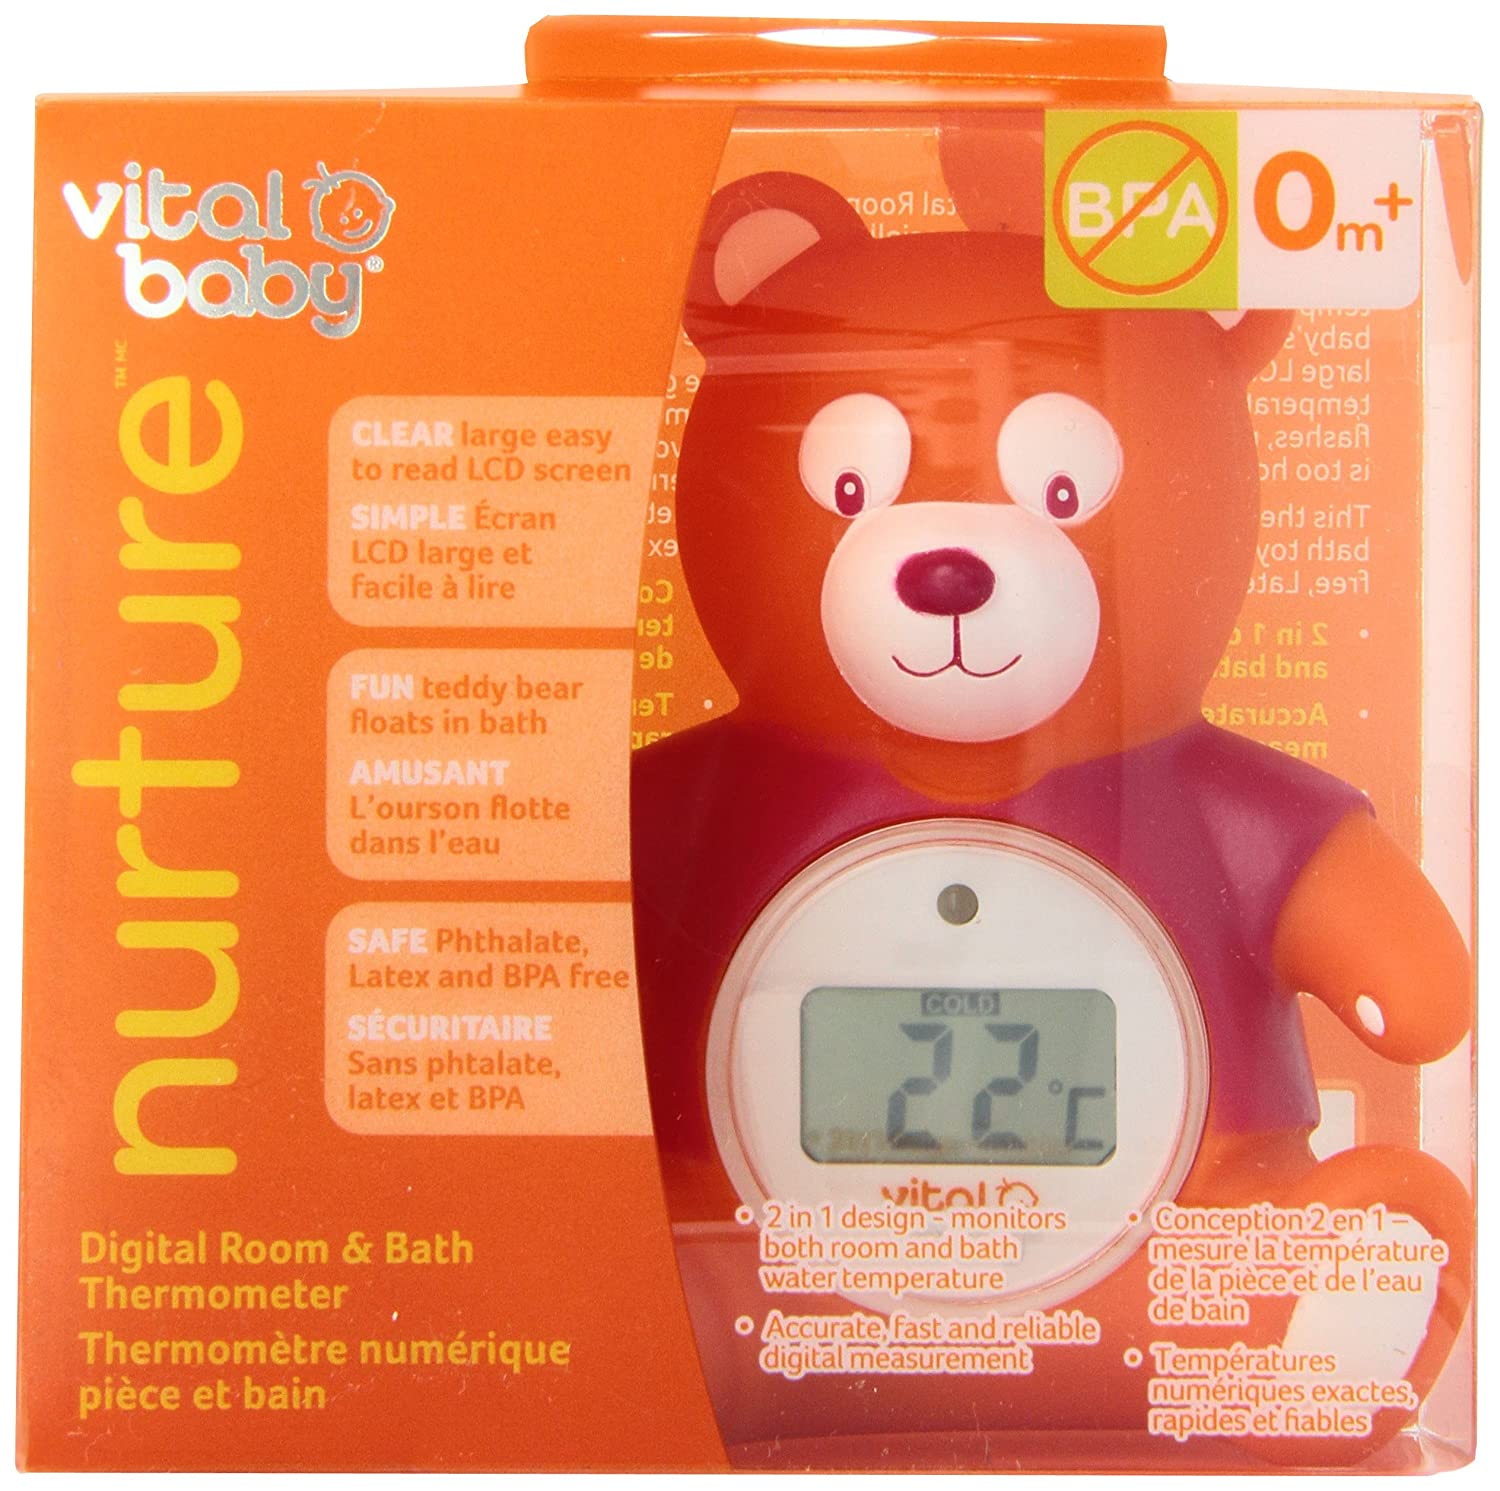 Vital Baby Nurture Digital Bath and Room Thermometer 87511